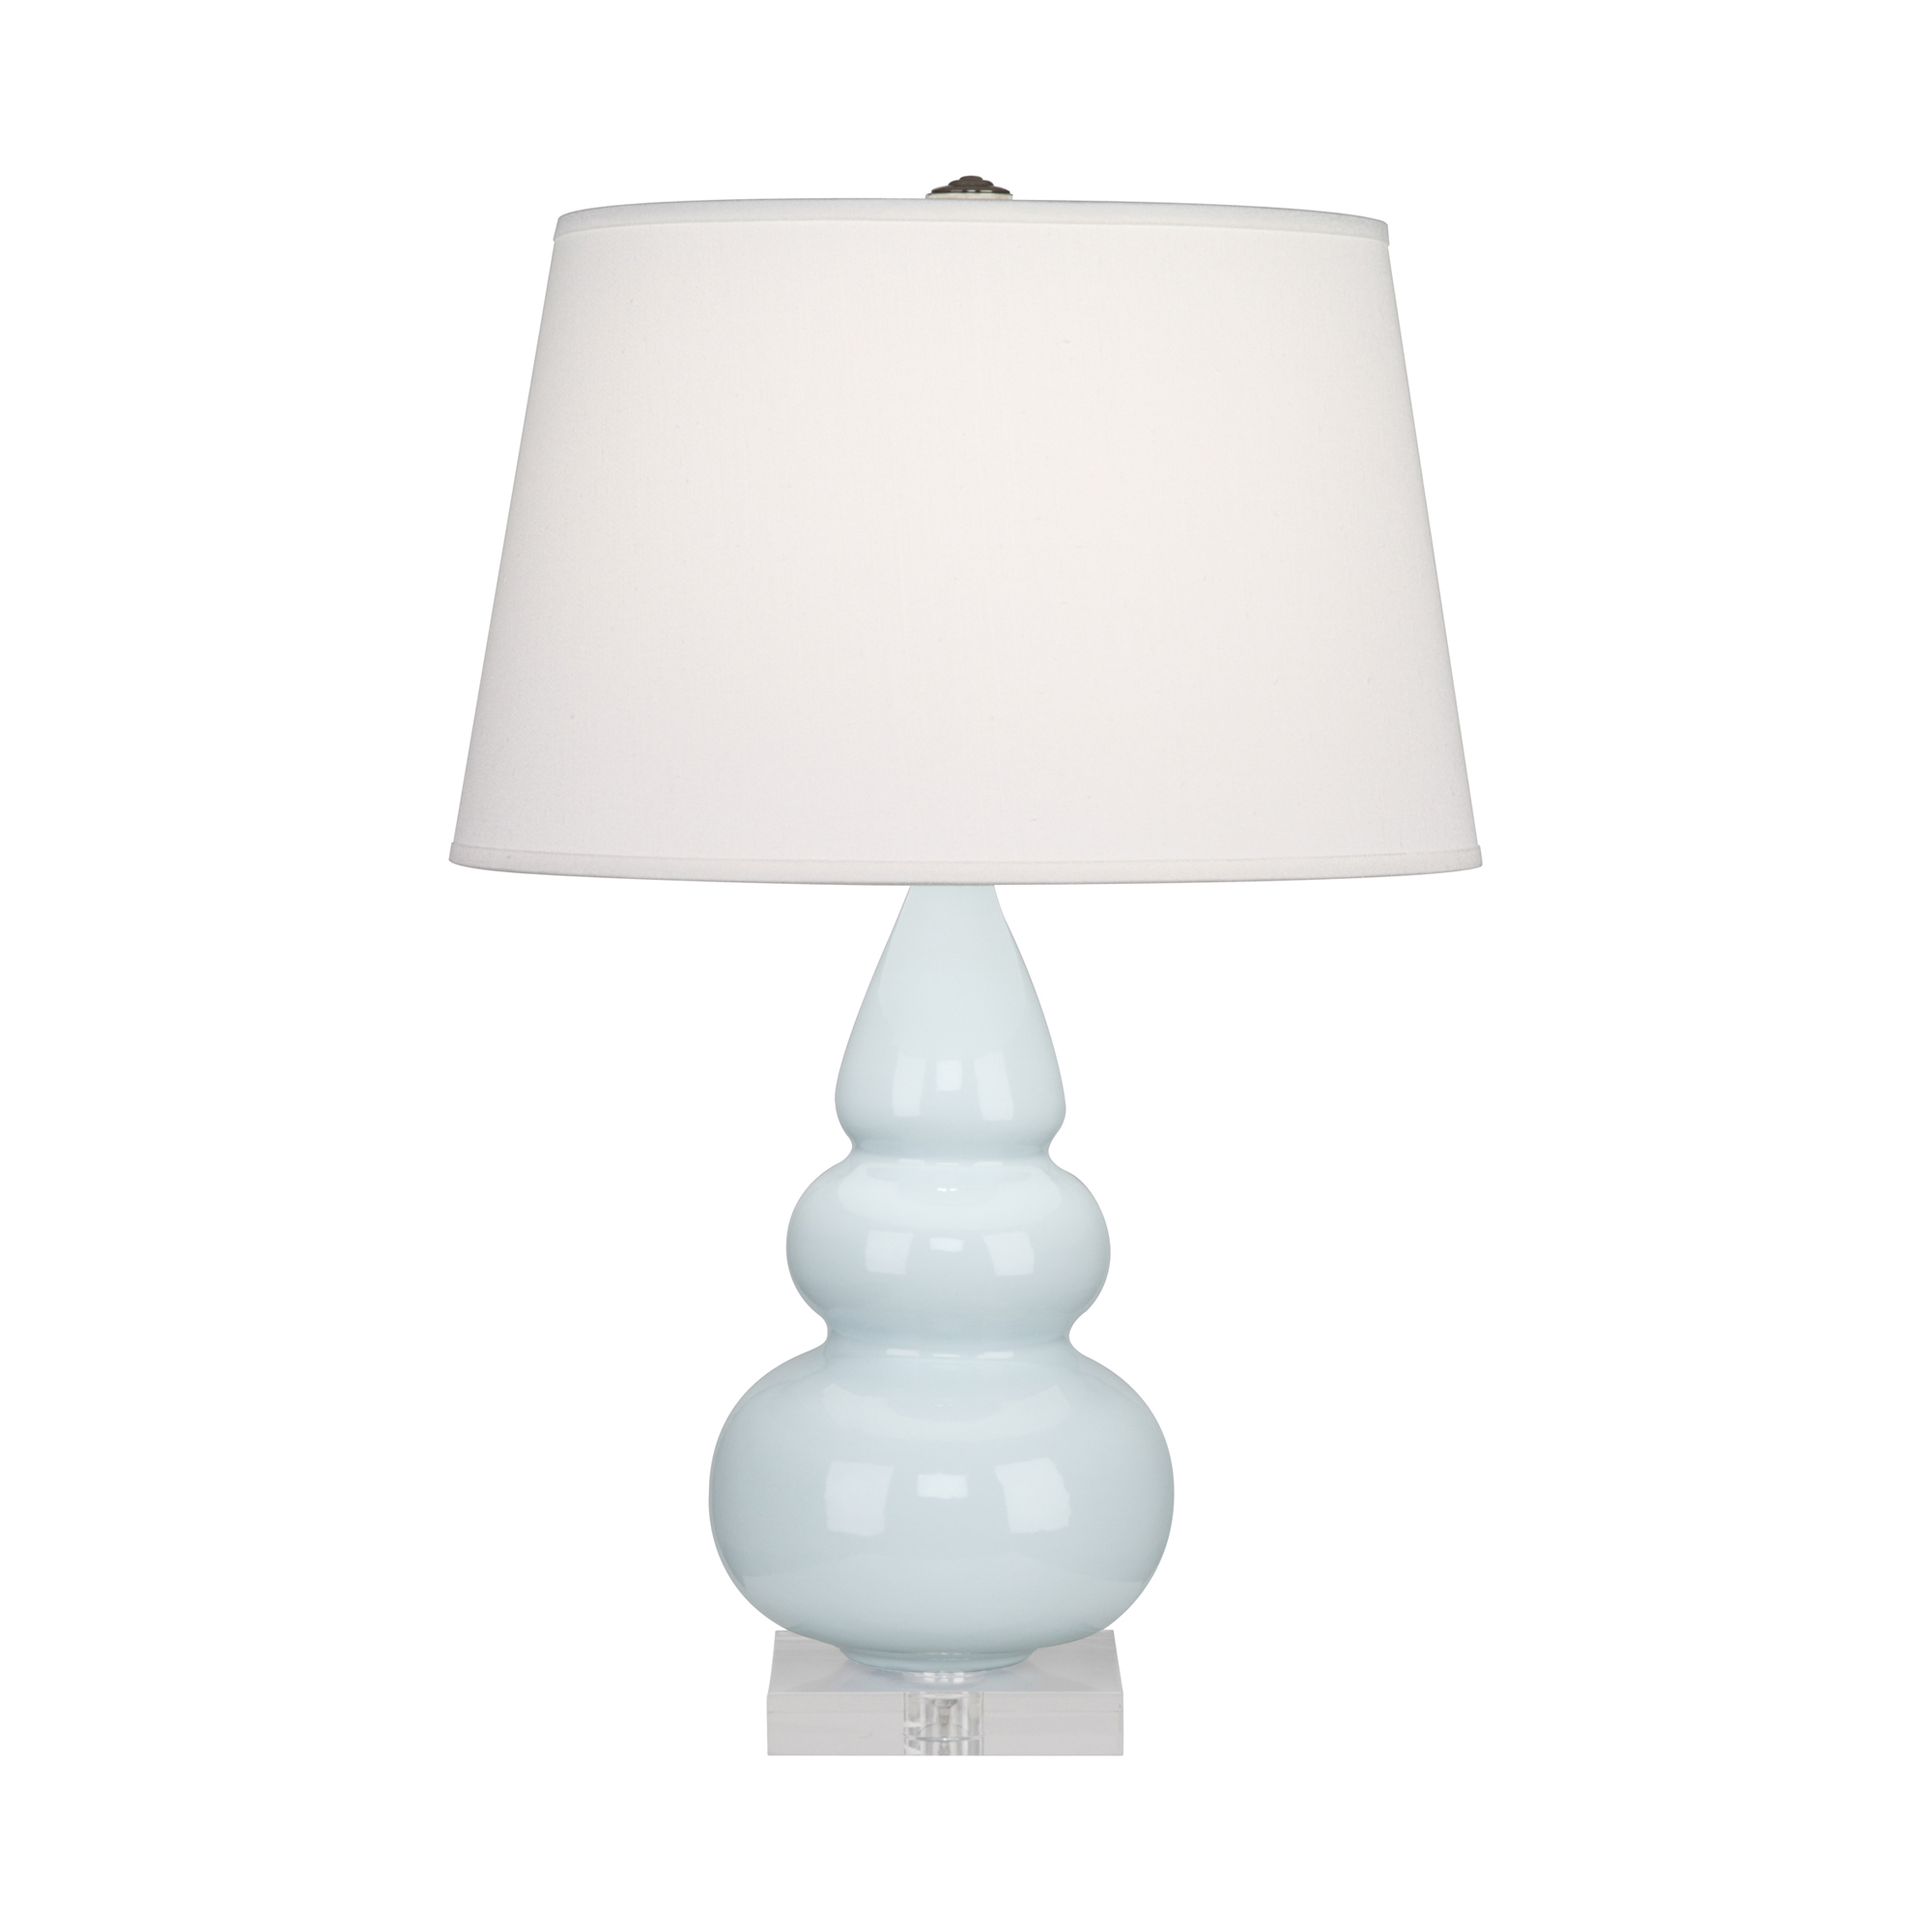 Small Triple Gourd Accent Lamp Style #A291X